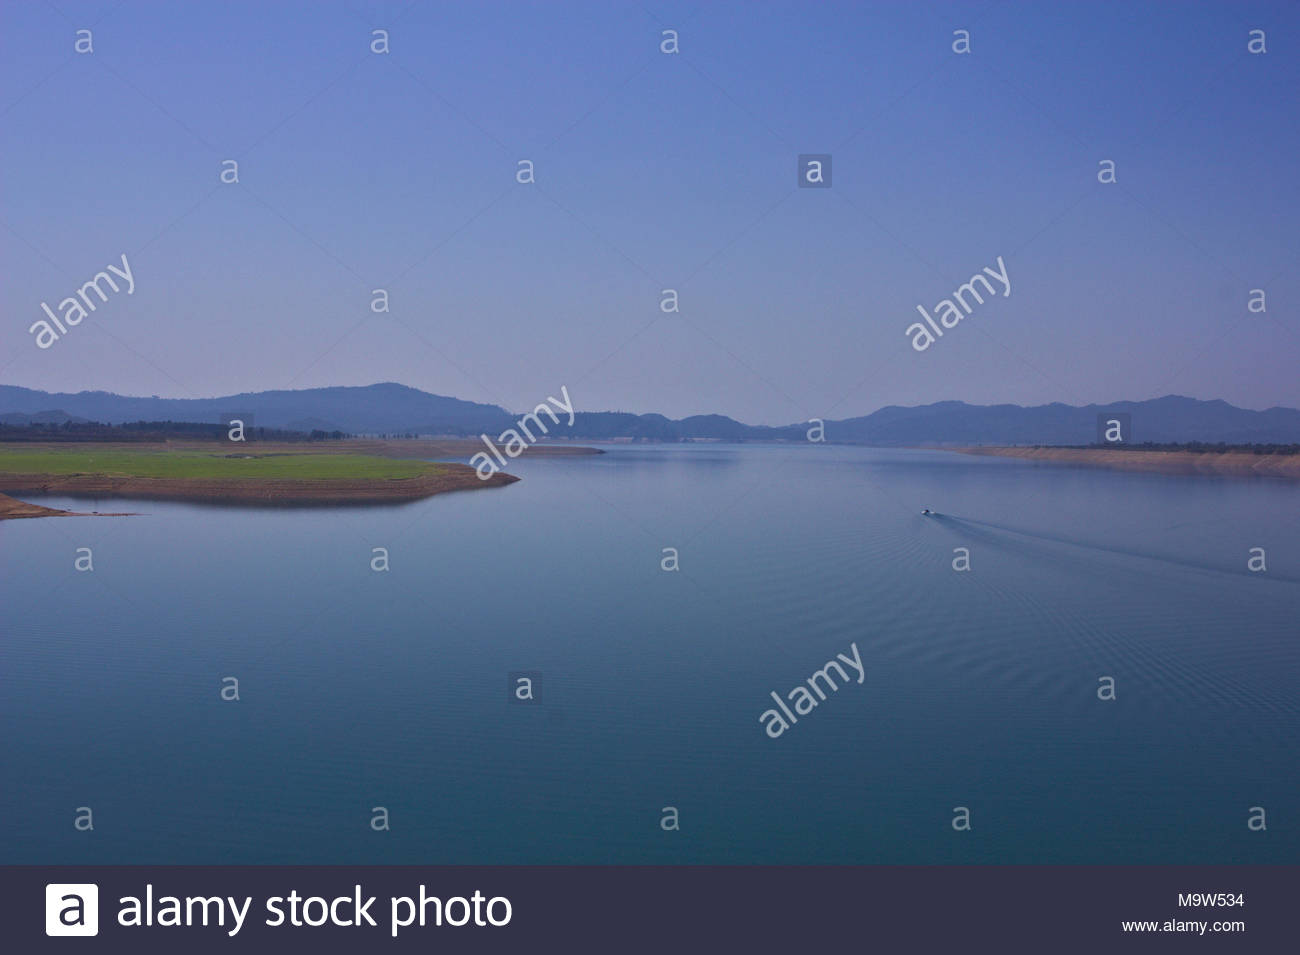 Lake with hills in the background - Stock Image